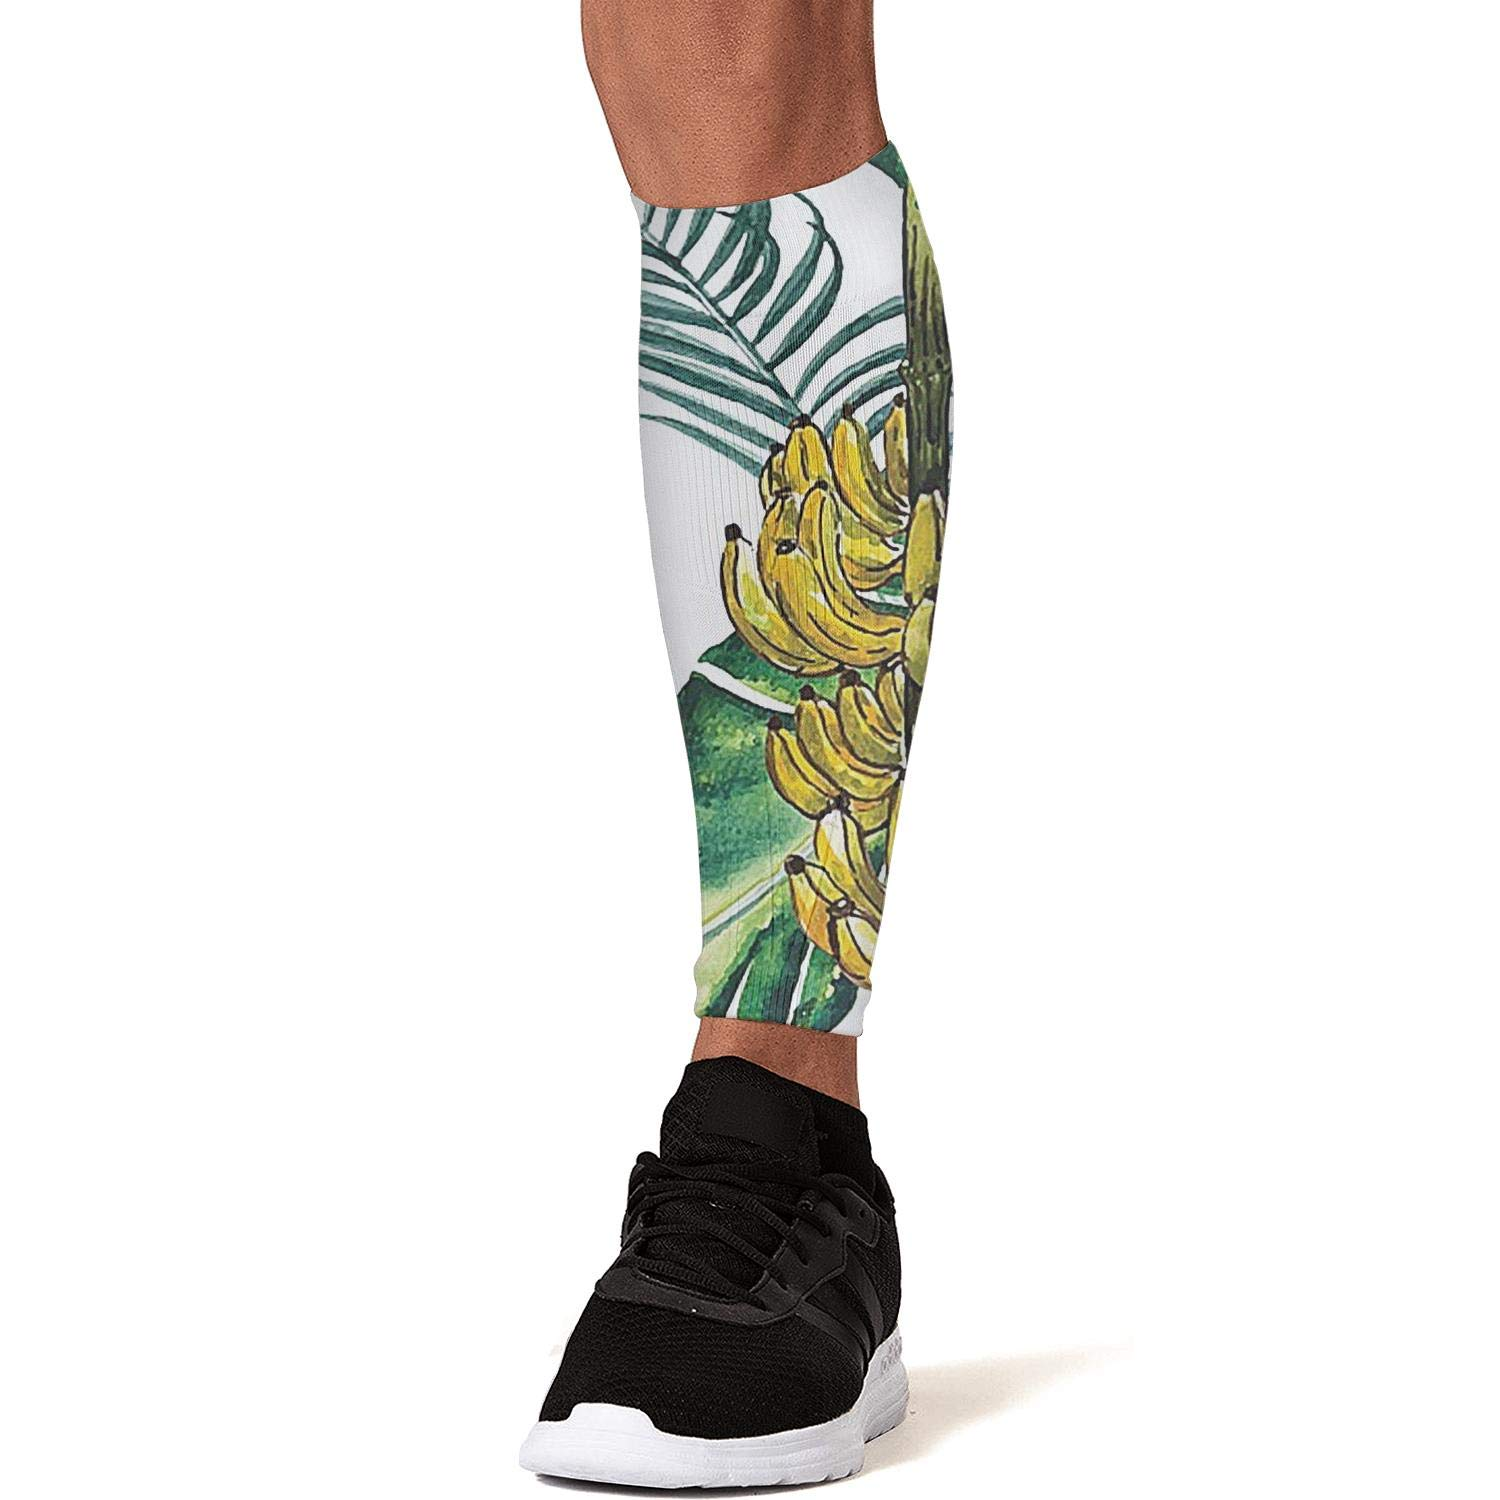 Smilelolly Tropical Banana Leaves Calf Compression Sleeves Helps Pain Relief Leg Sleeves for Men Women